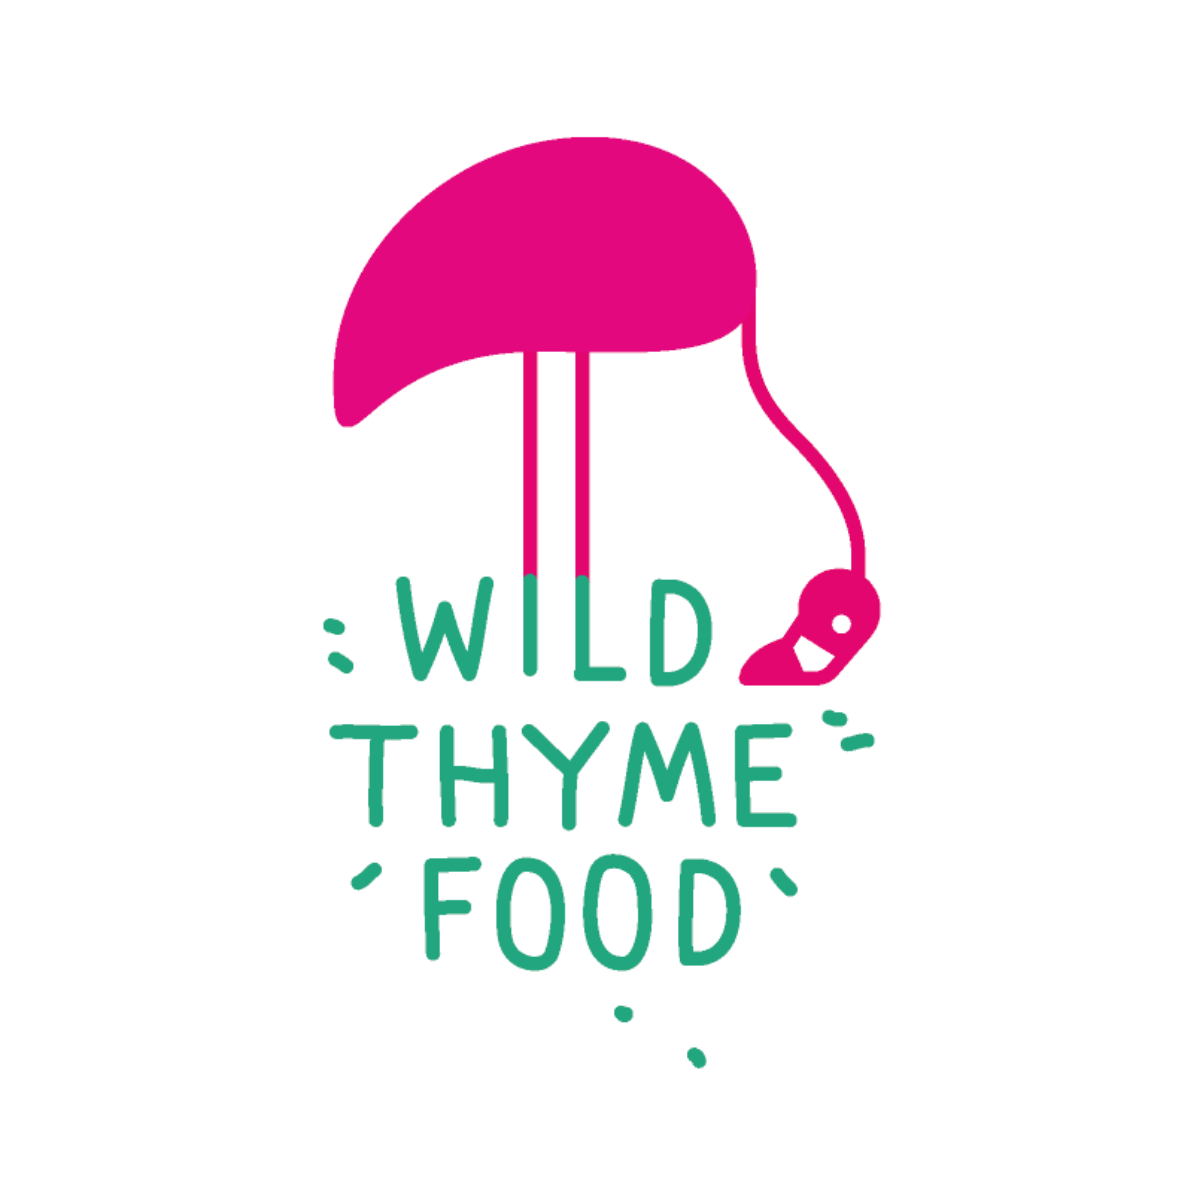 WILD THYME FOOD